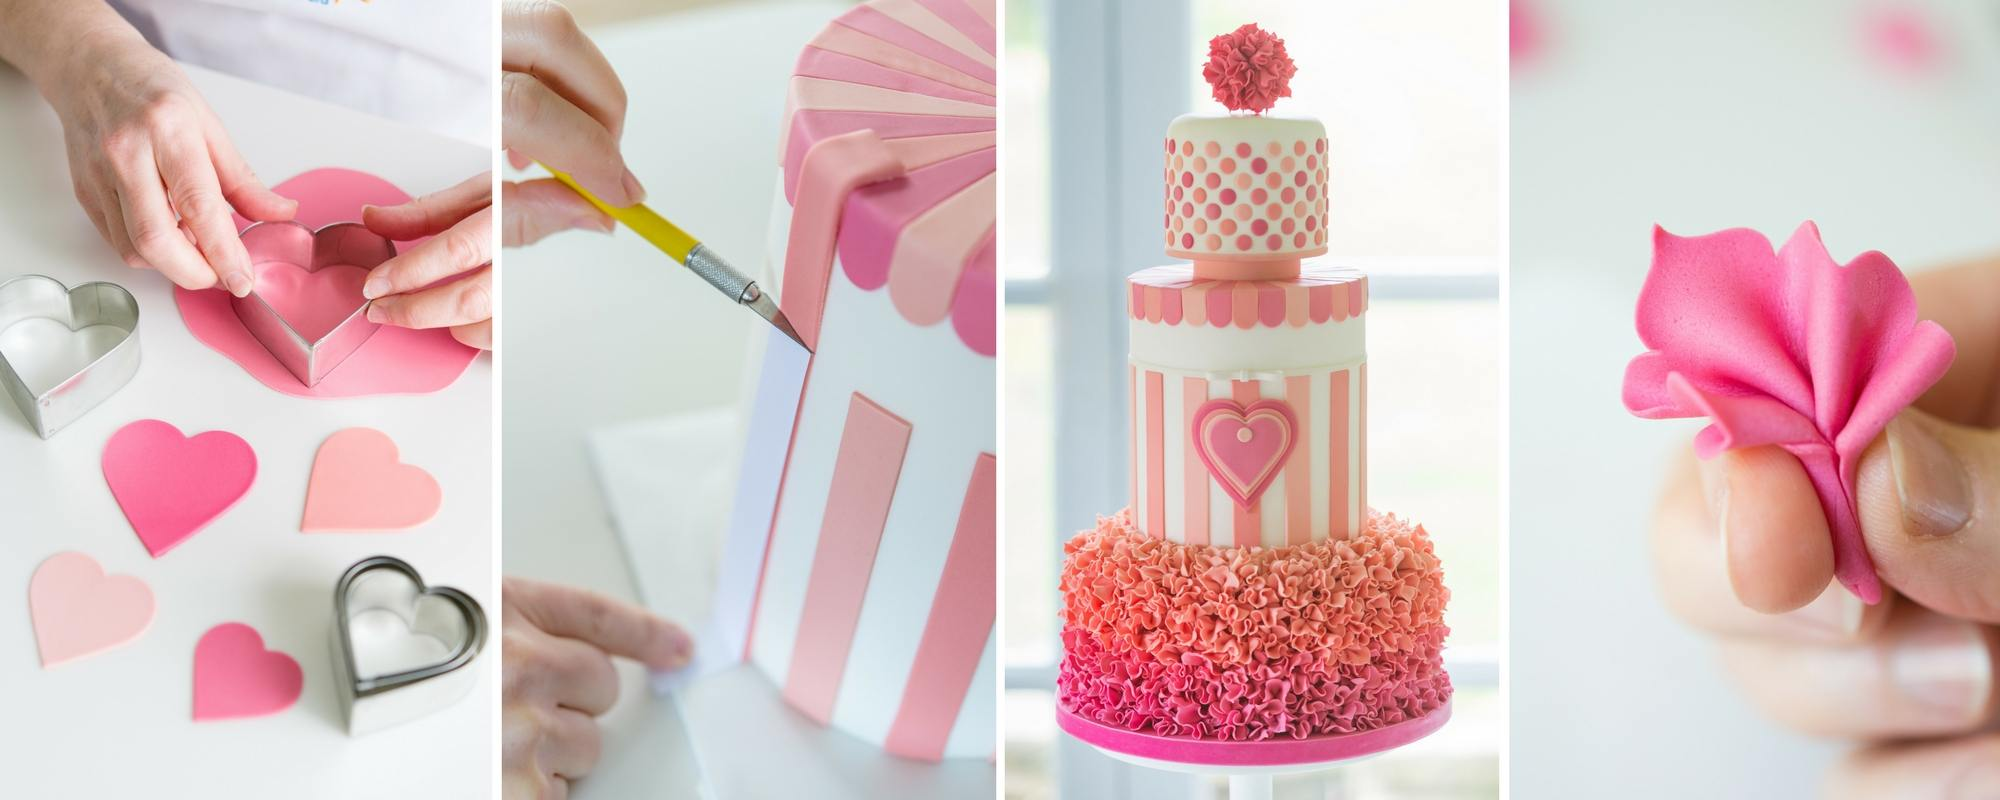 steps for making Lindy Smith's sweetheart stripes party cakes